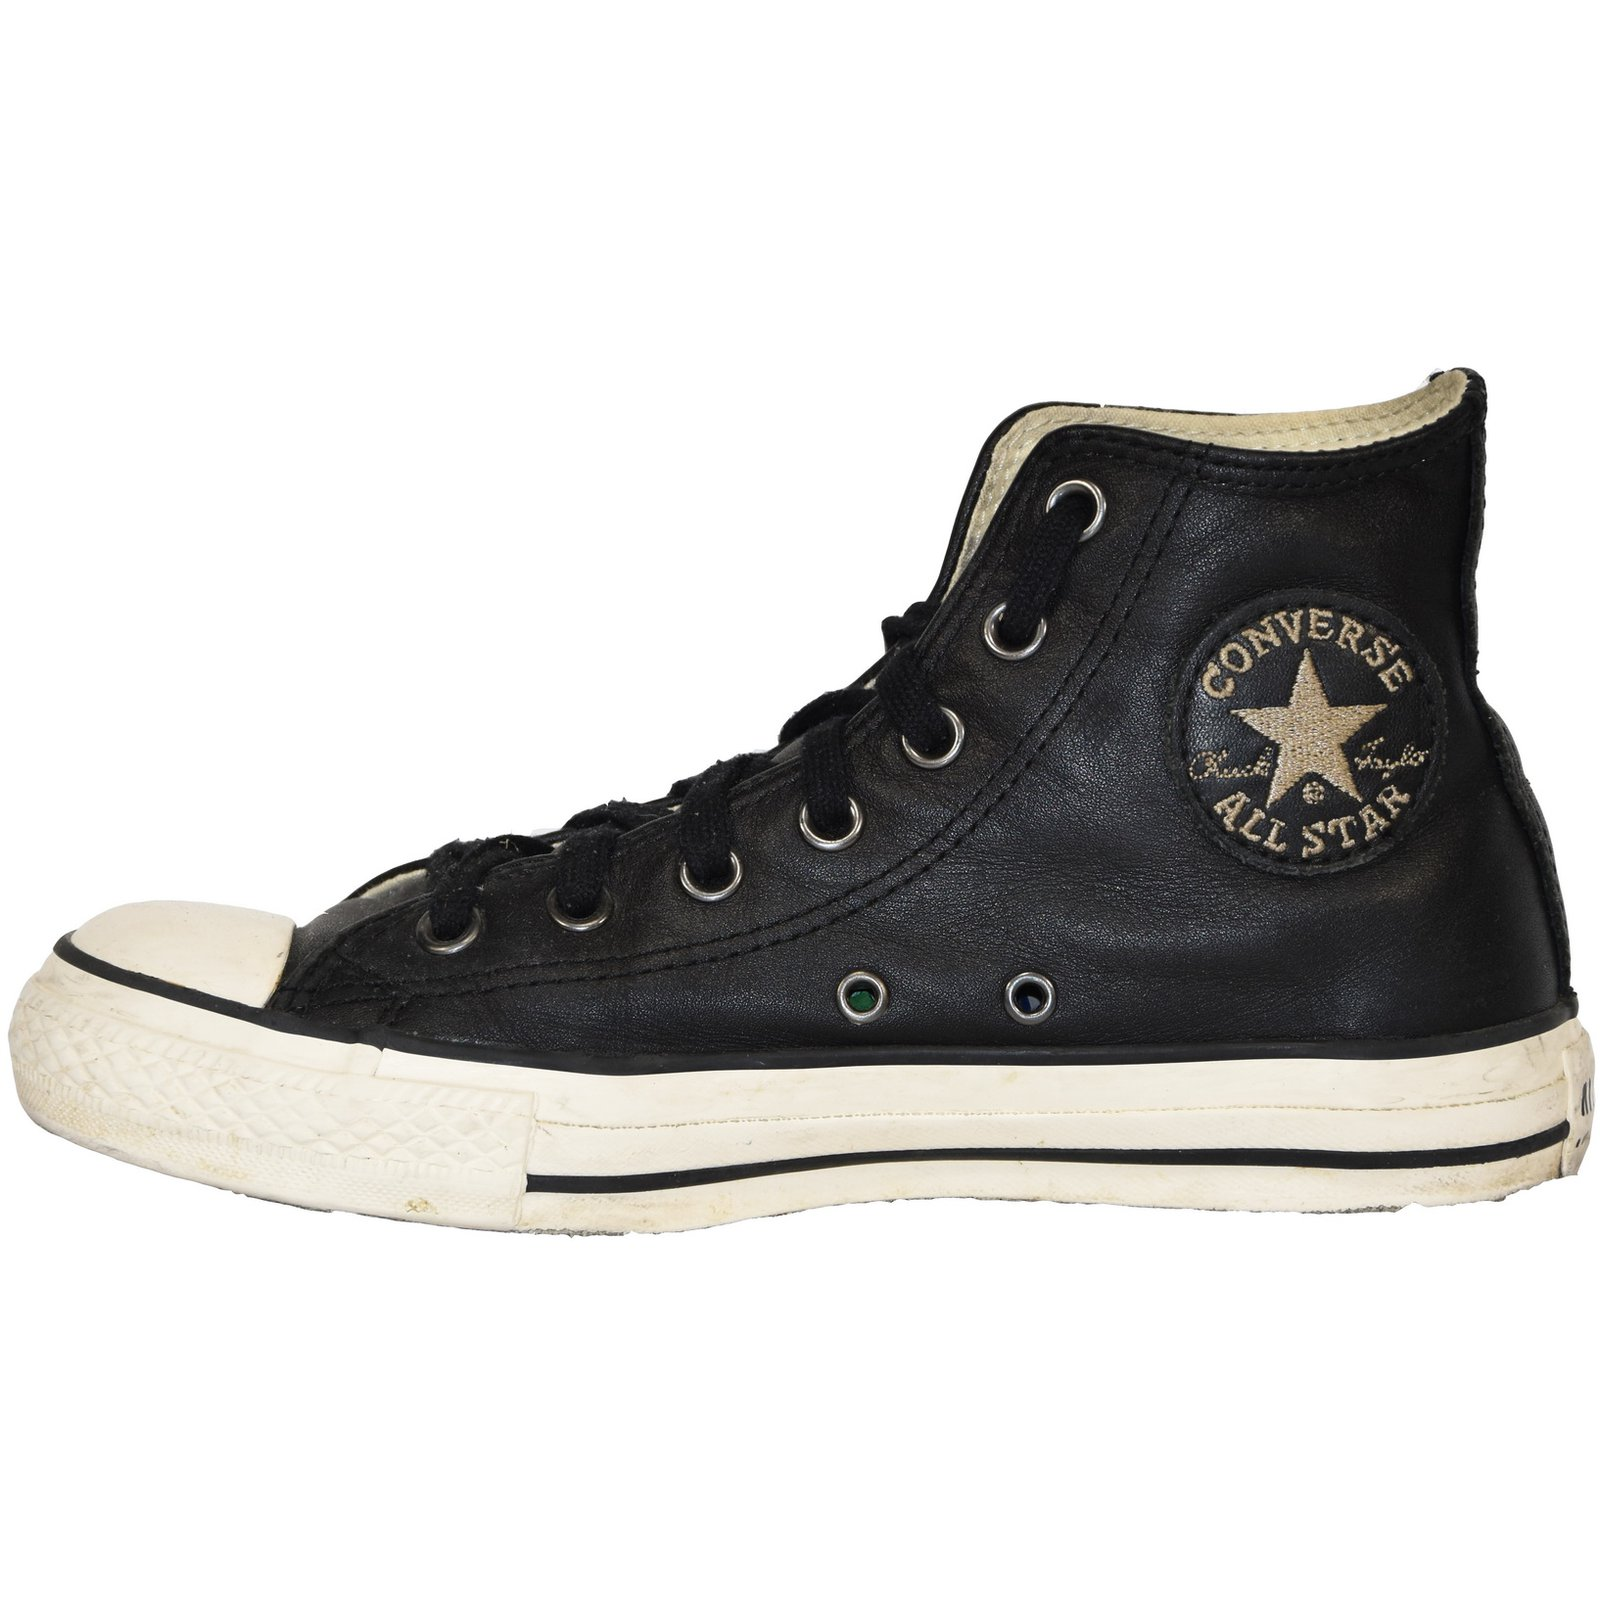 CONVERSE ALL STAR CHUCK TAYLOR HI CUIR NOIR T.38 UK 5.5